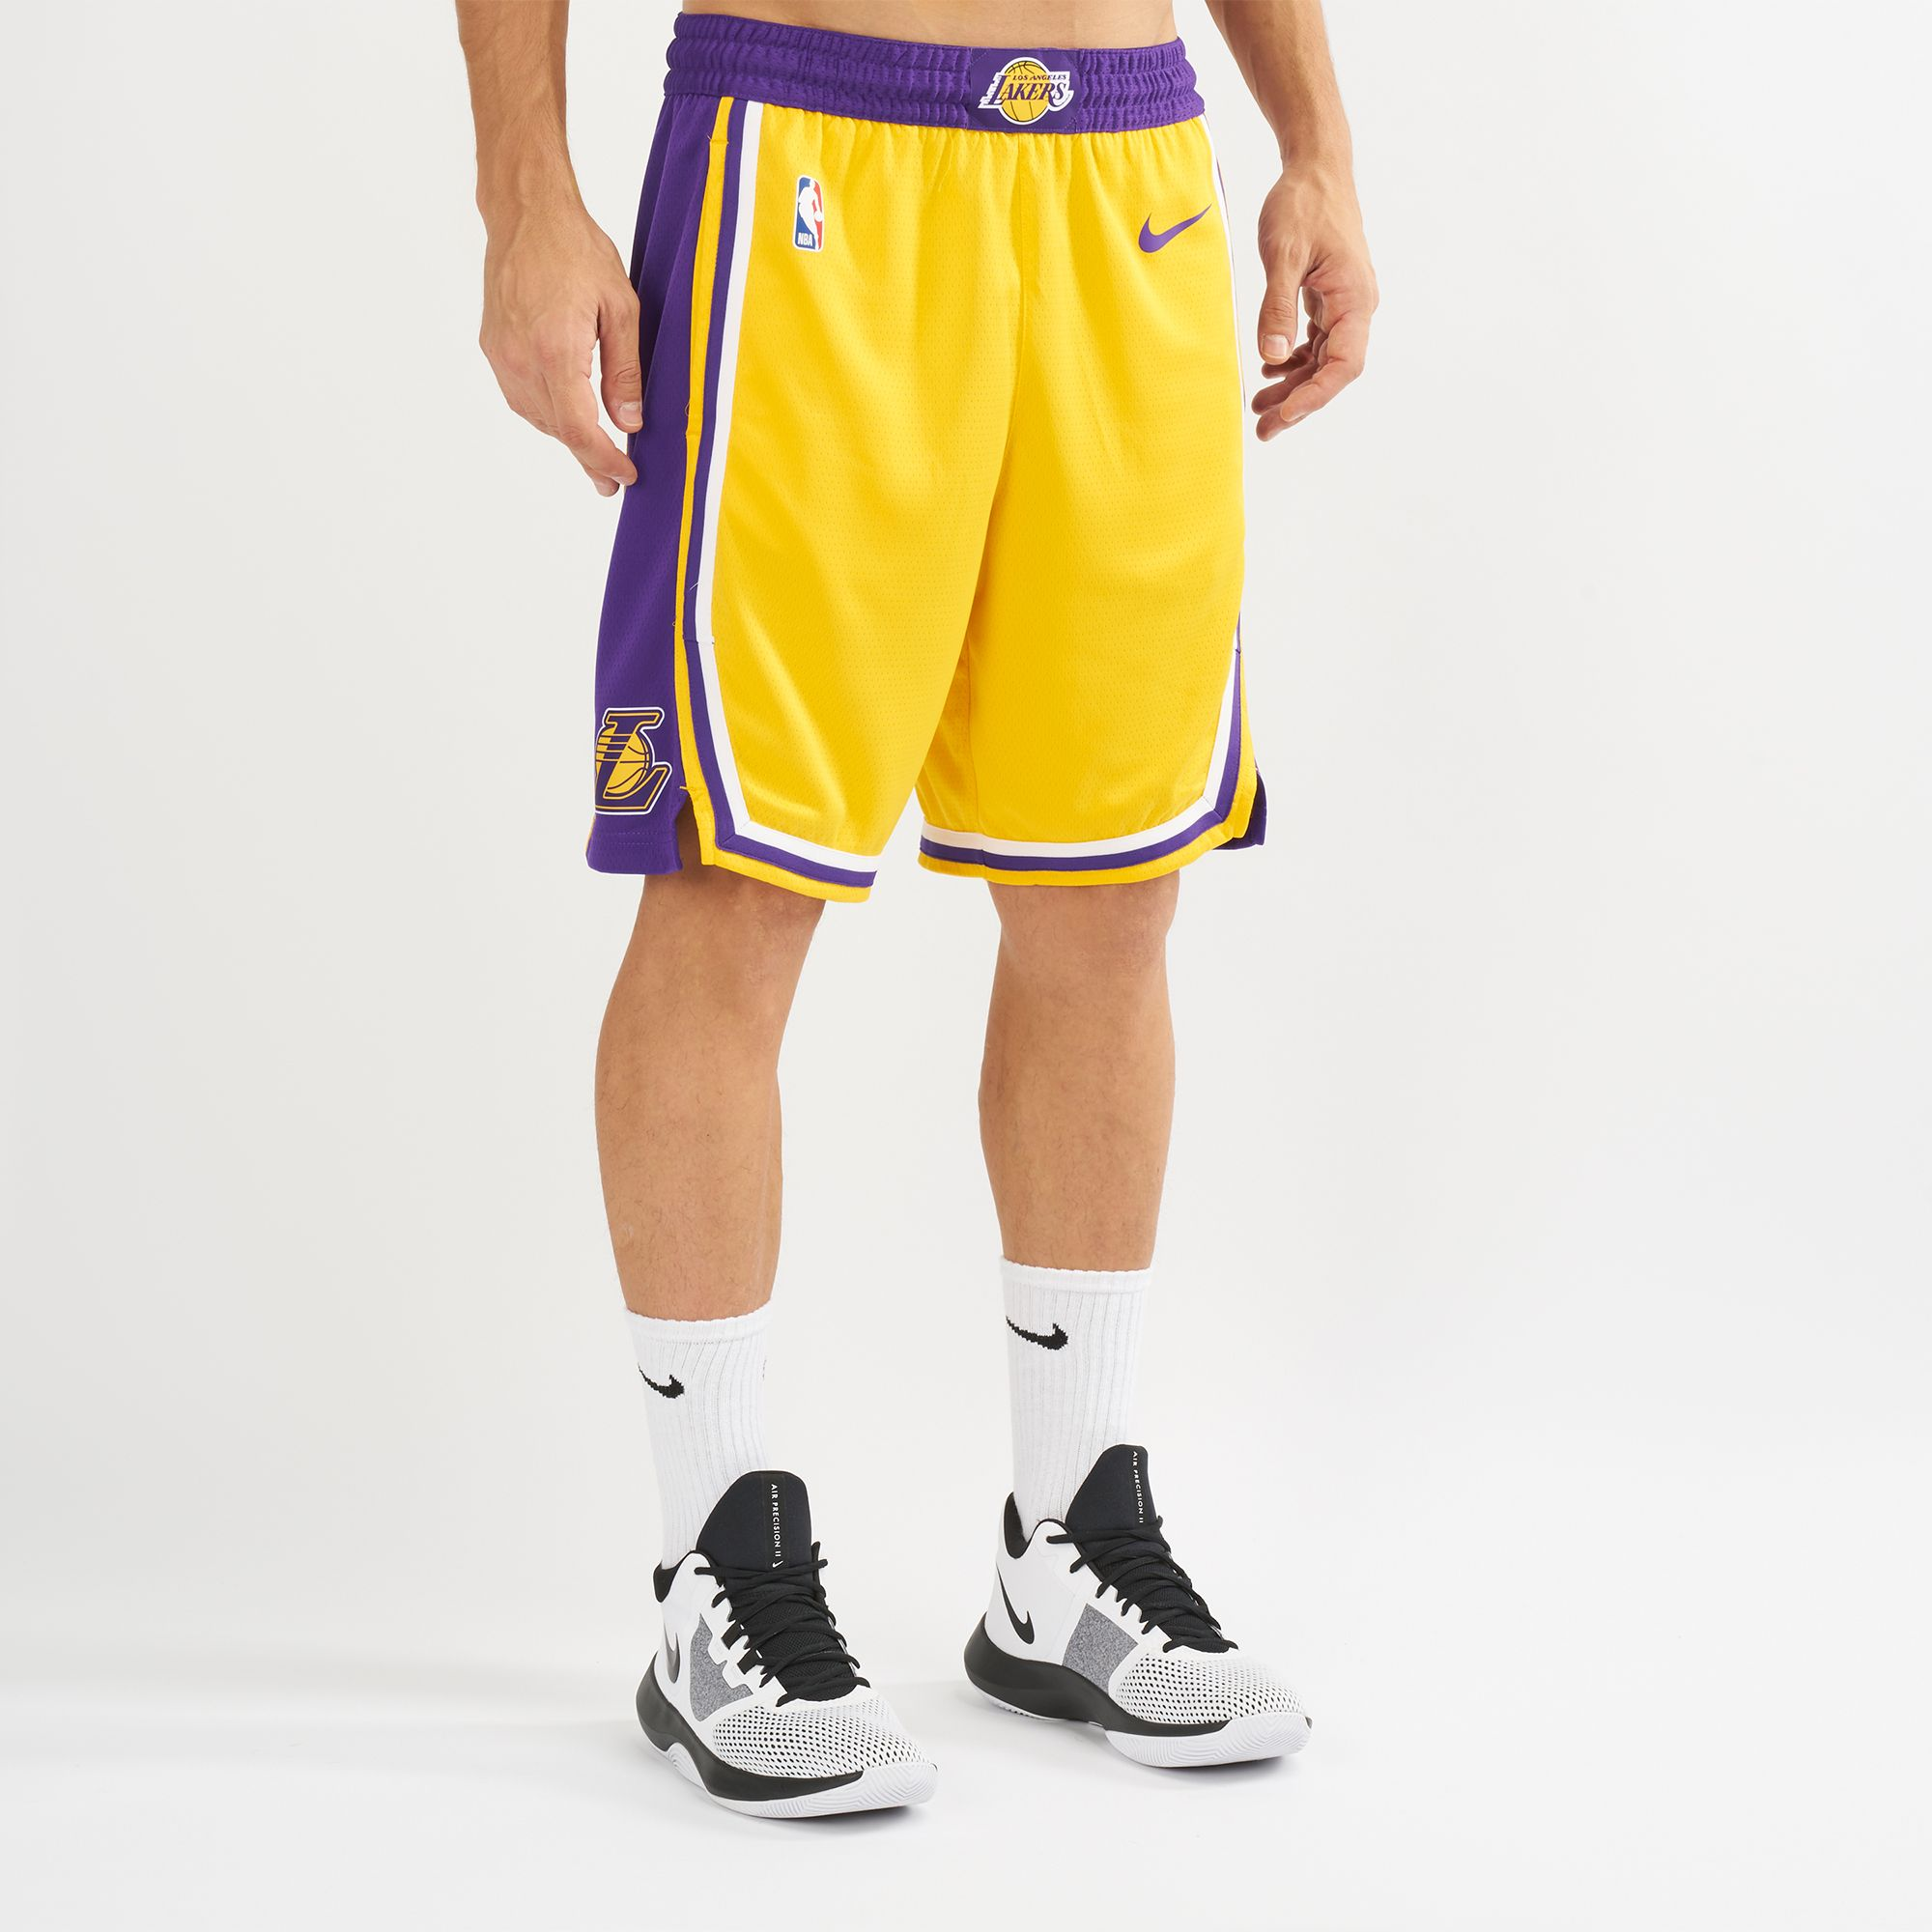 f9c69543 Product details of COD NBA lakers Basketball shorts 2019 new design